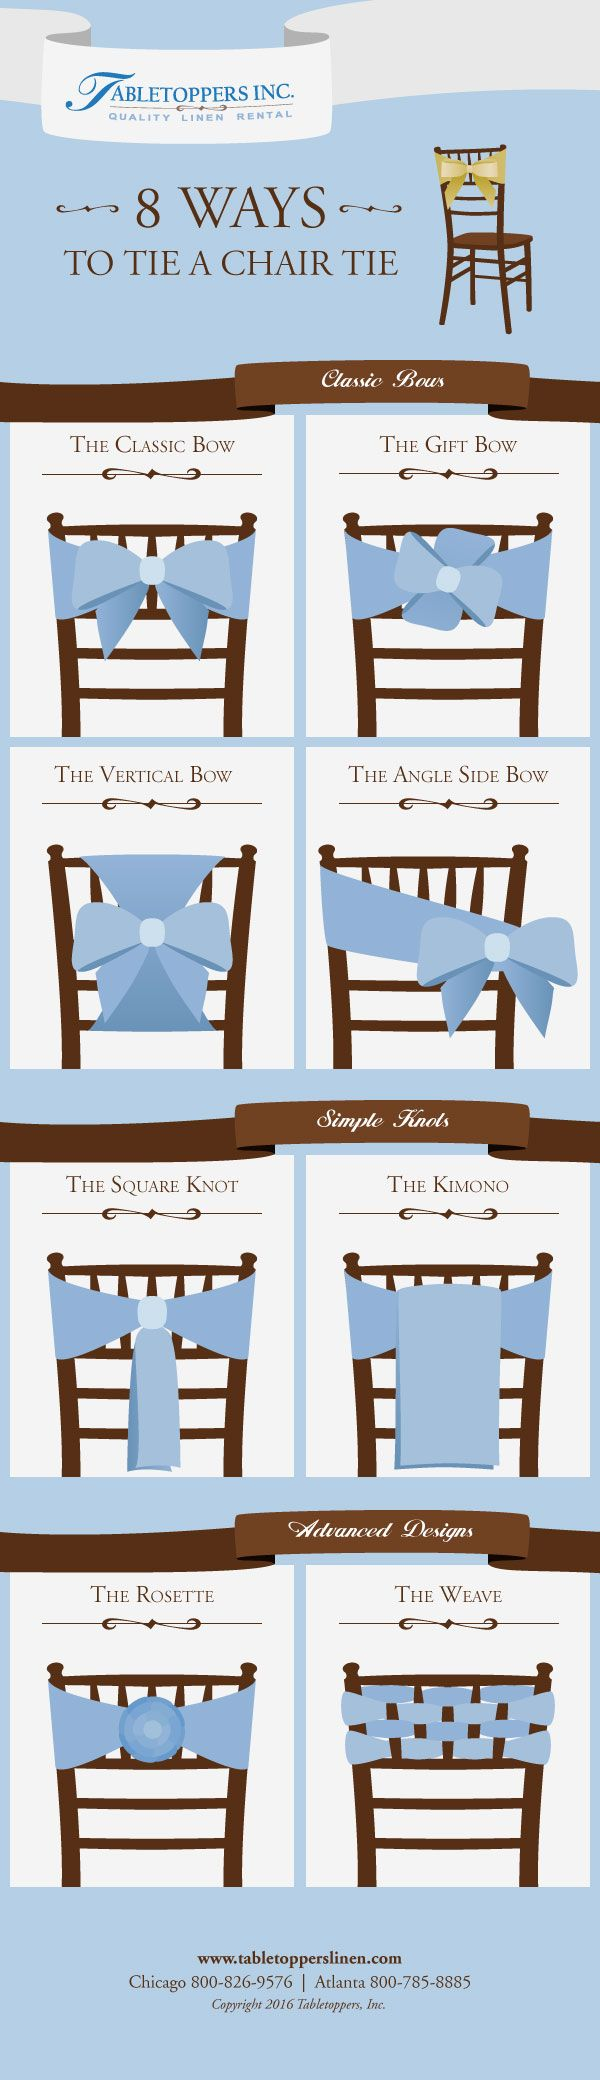 Easy Chair Covers For Weddings - Check out the new tabletoppers inc chair tie idea guide more tutorials are live on